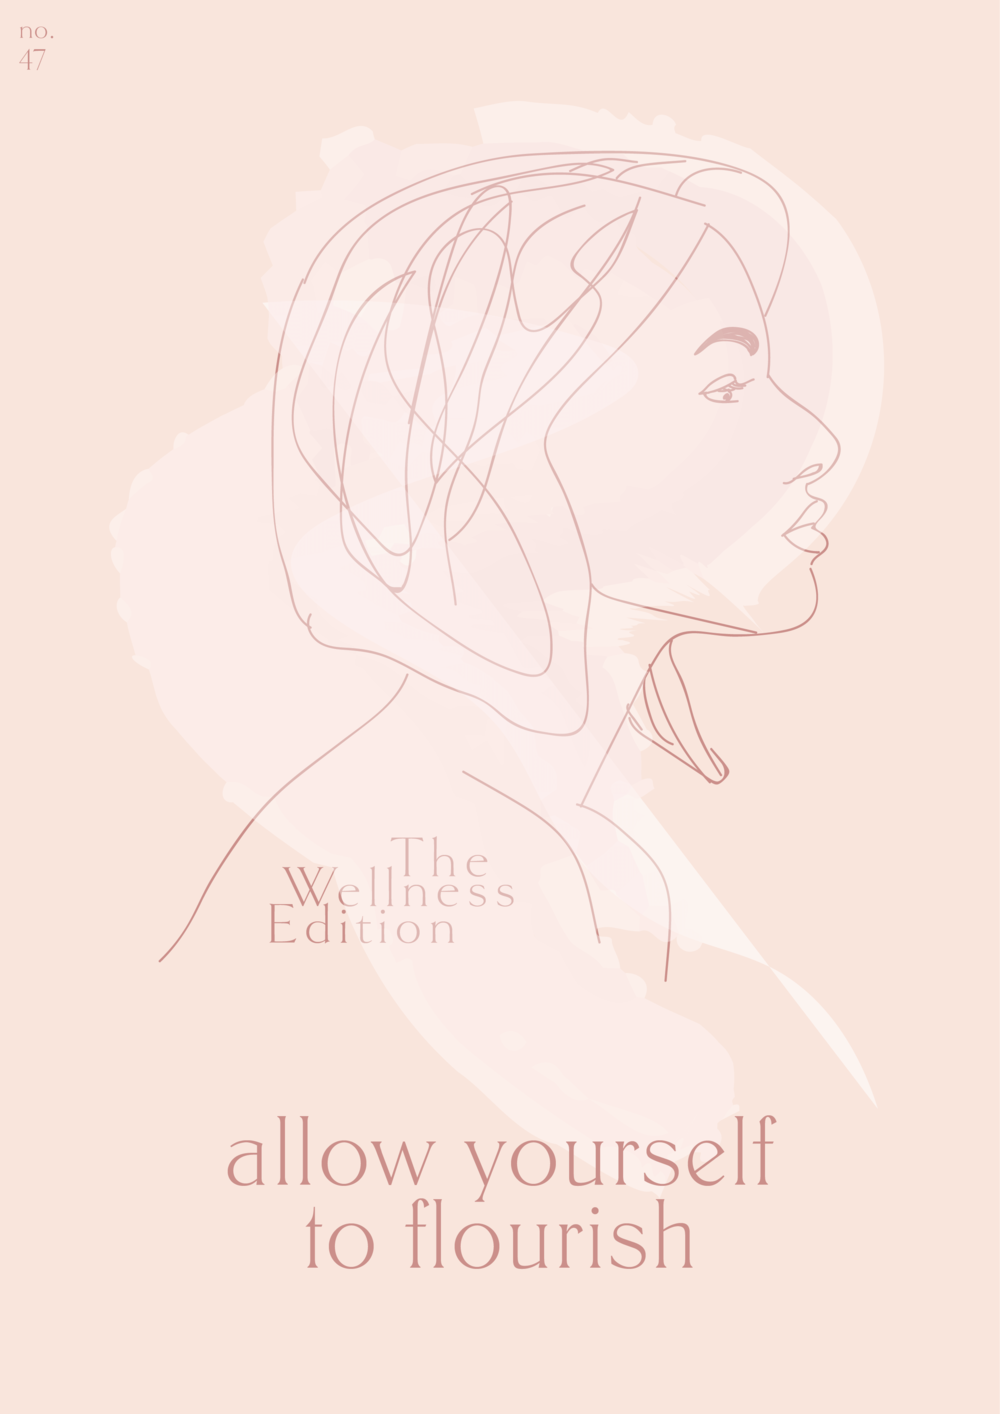 The Wellness Edition No.47 // Allow yourself to flourish